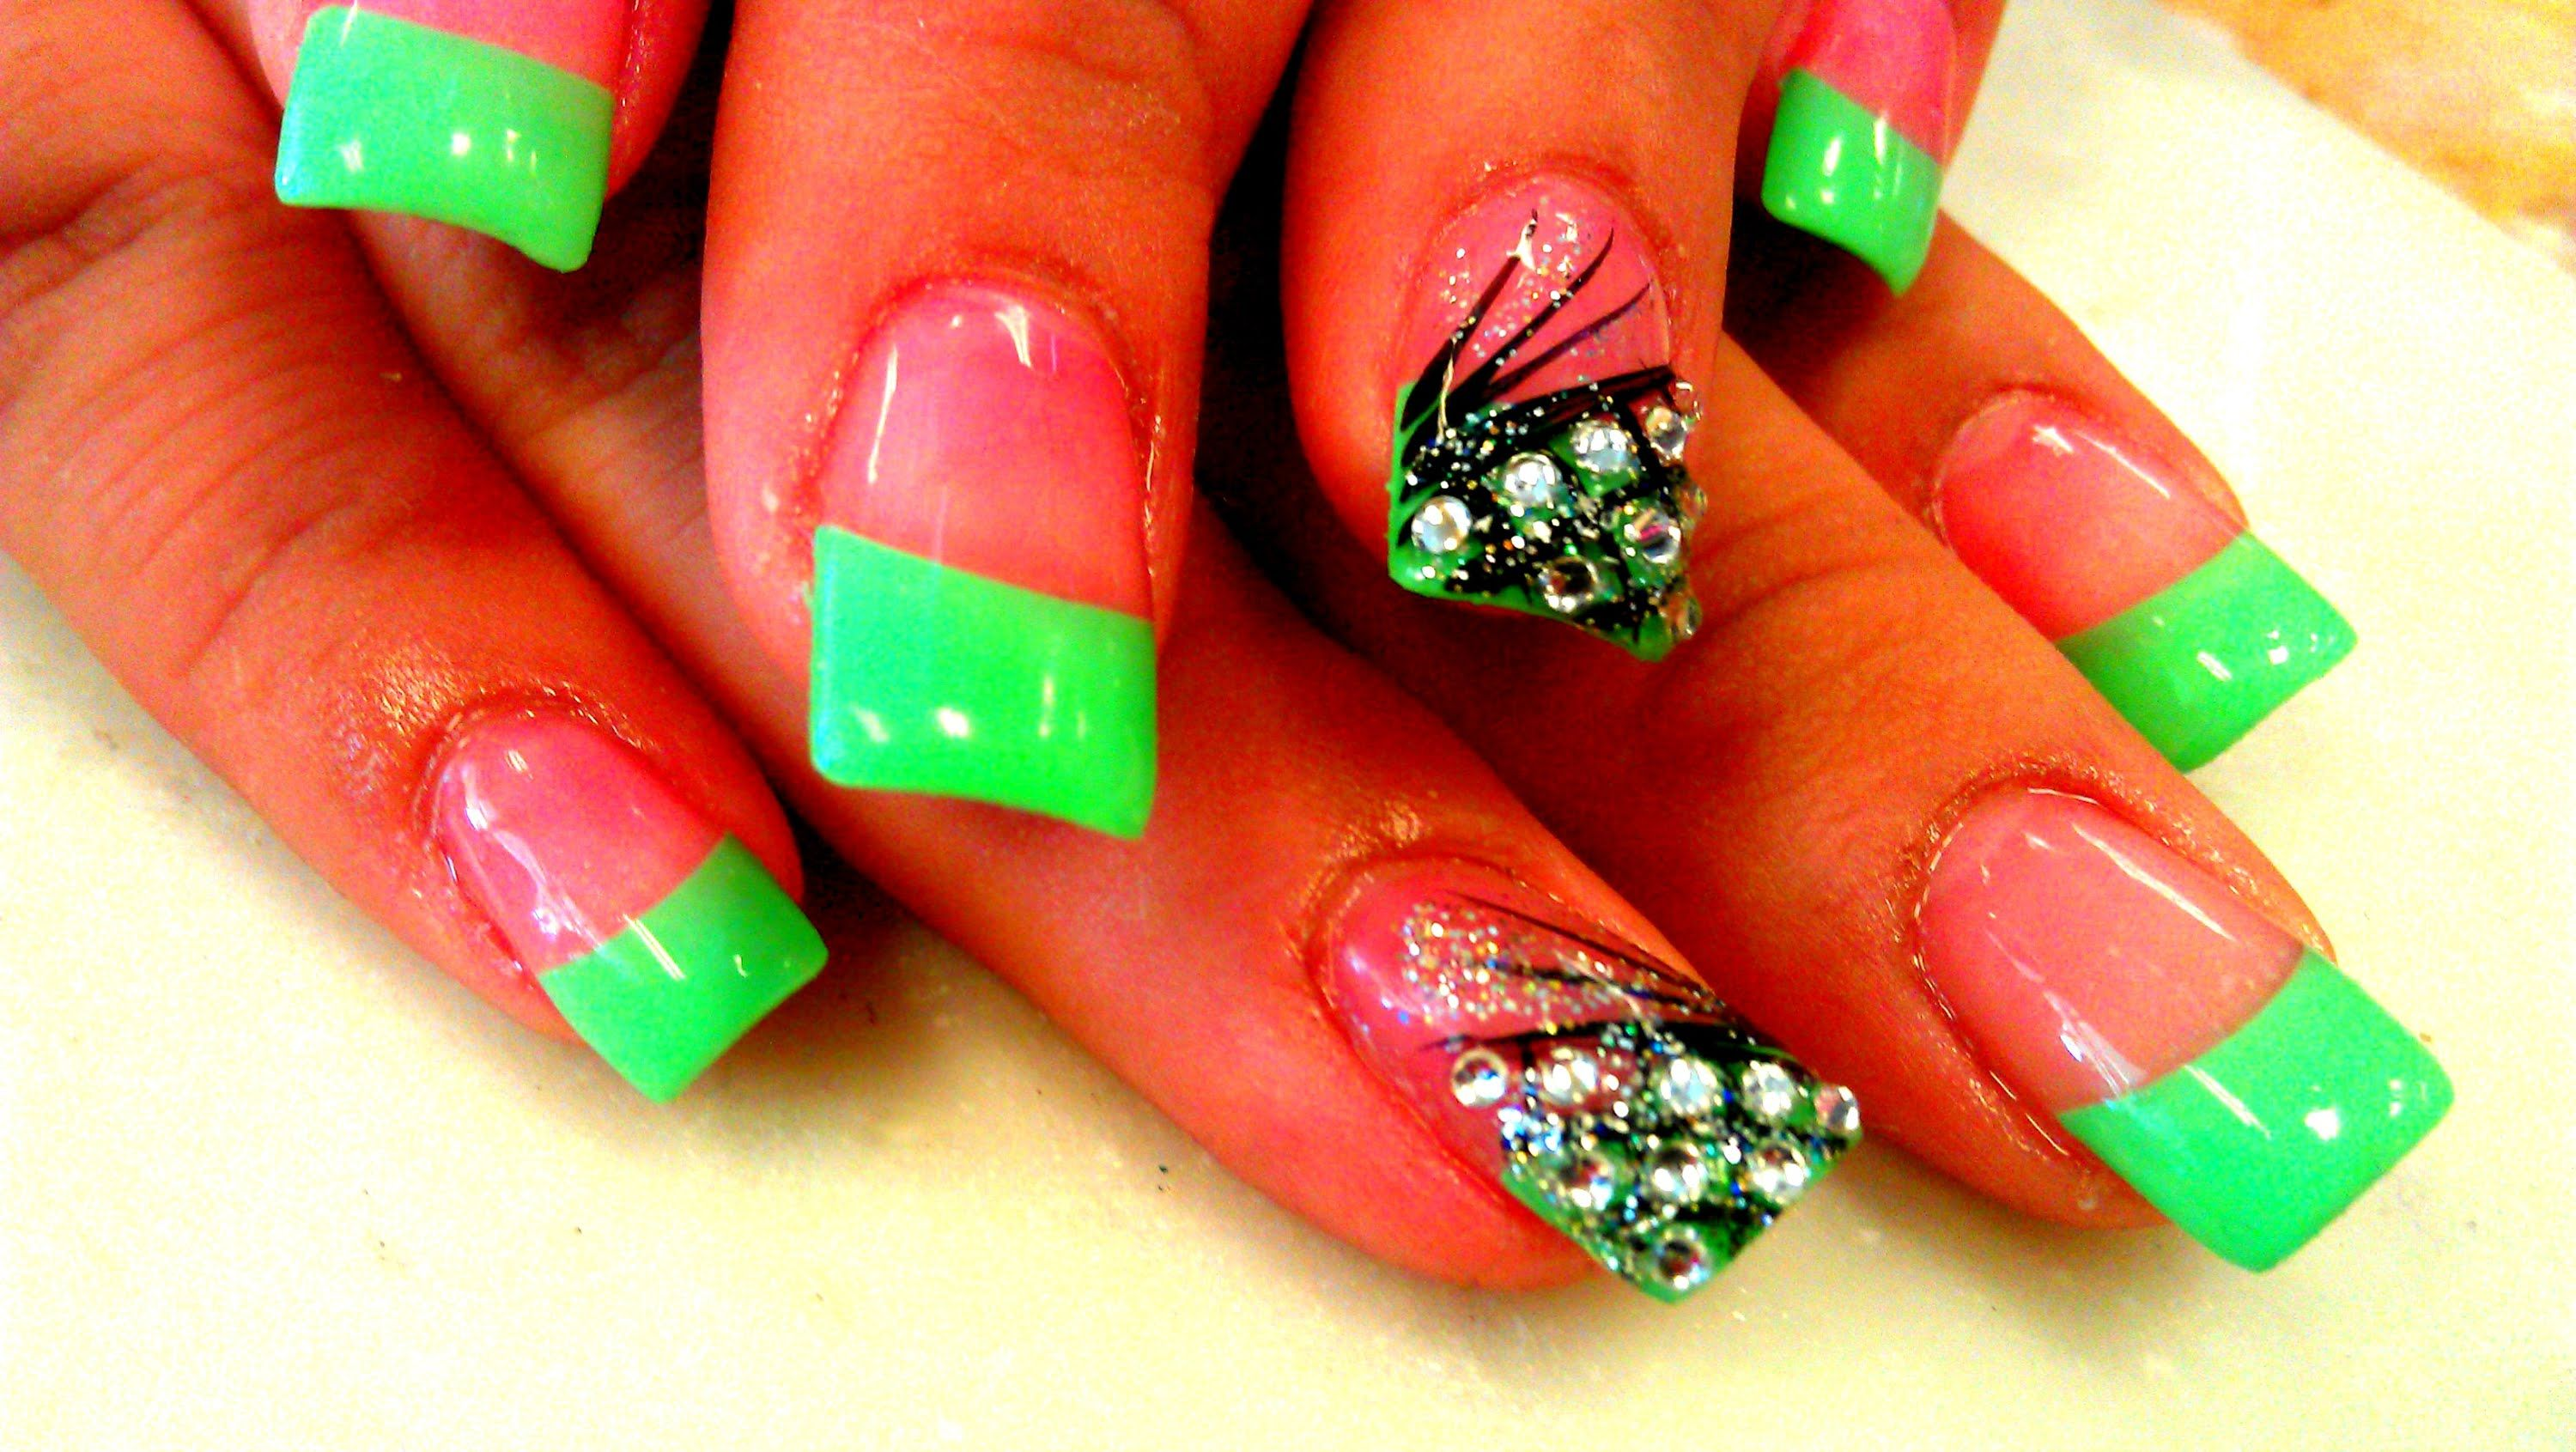 Beginners guide to acrylic nails tutorial video nail